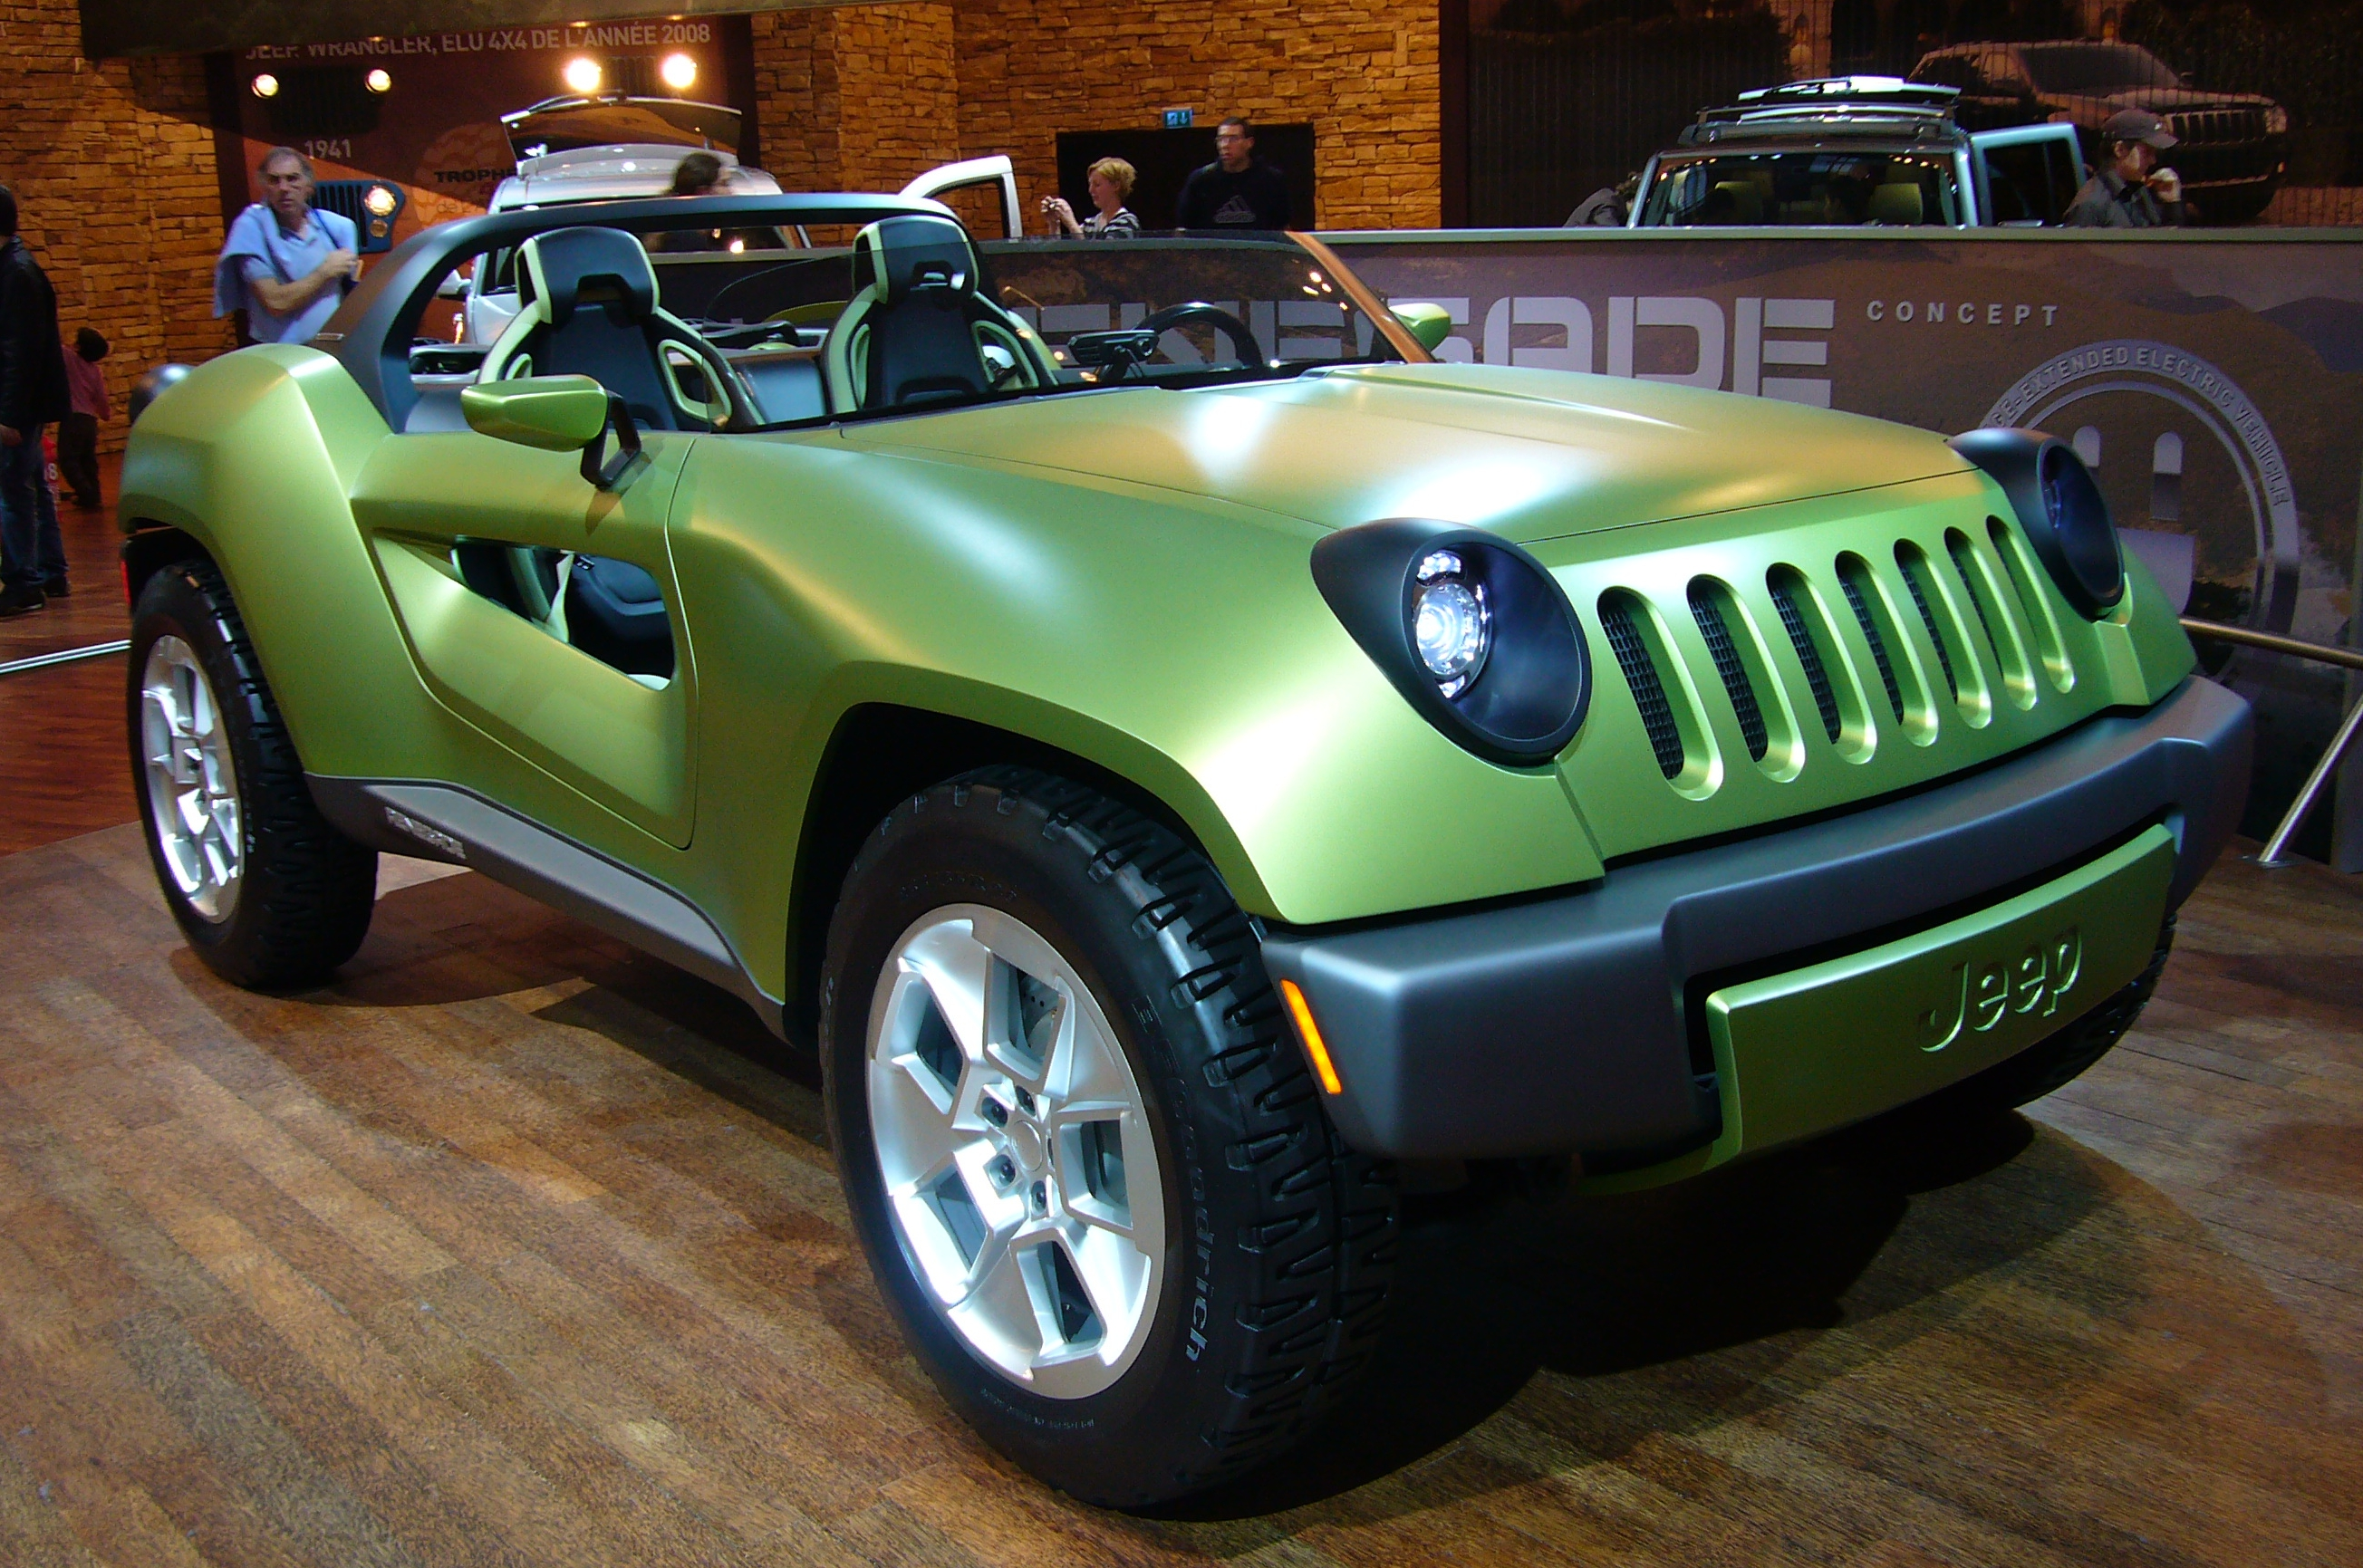 file jeep renegade concept front quarter jpg wikimedia commons. Black Bedroom Furniture Sets. Home Design Ideas